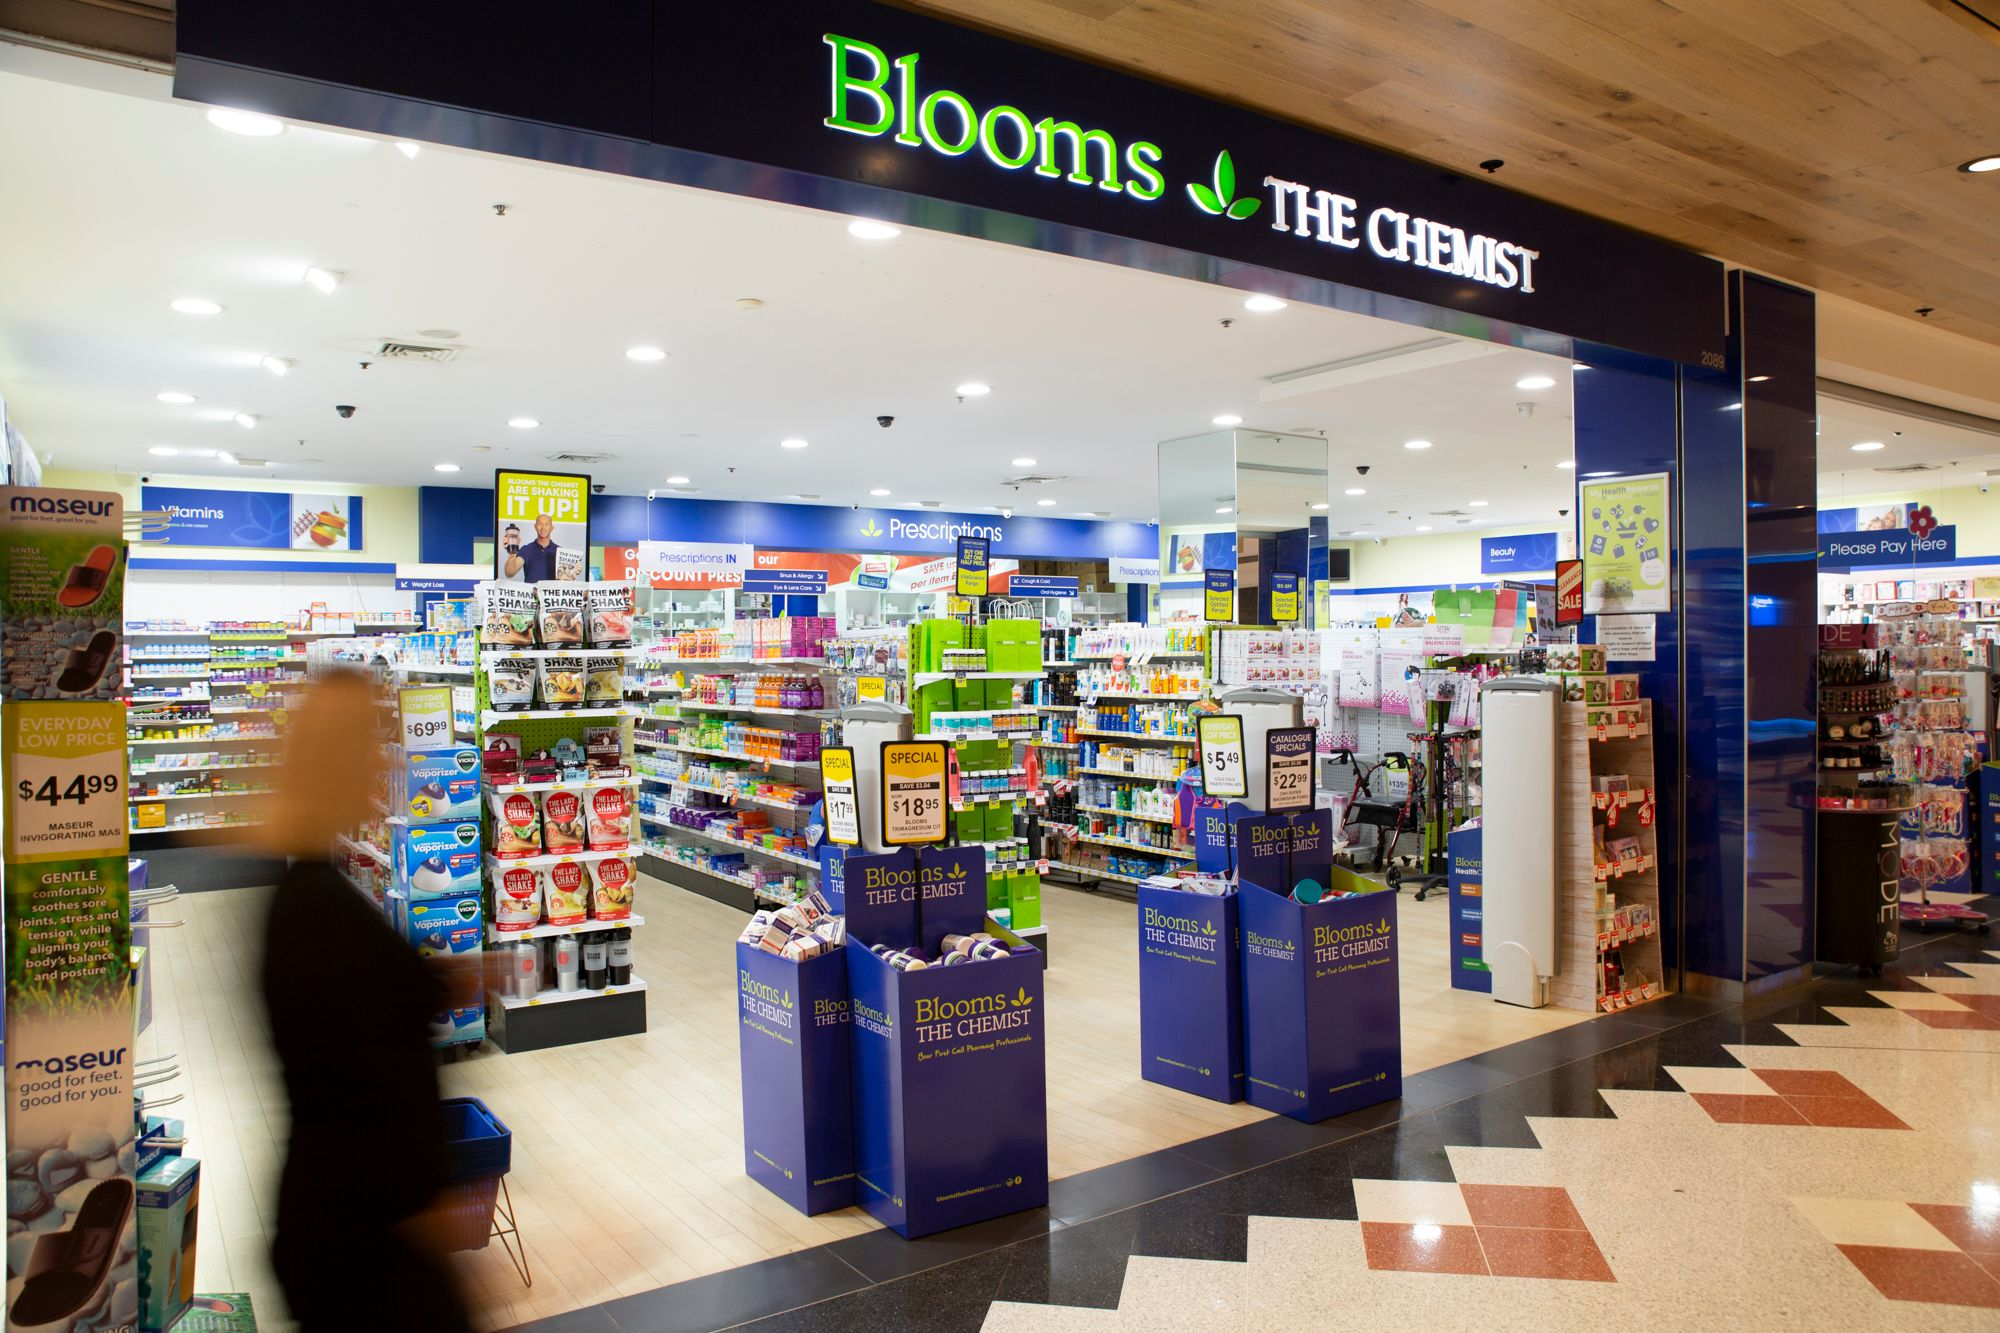 Blooms The Chemist PR and Content Agency